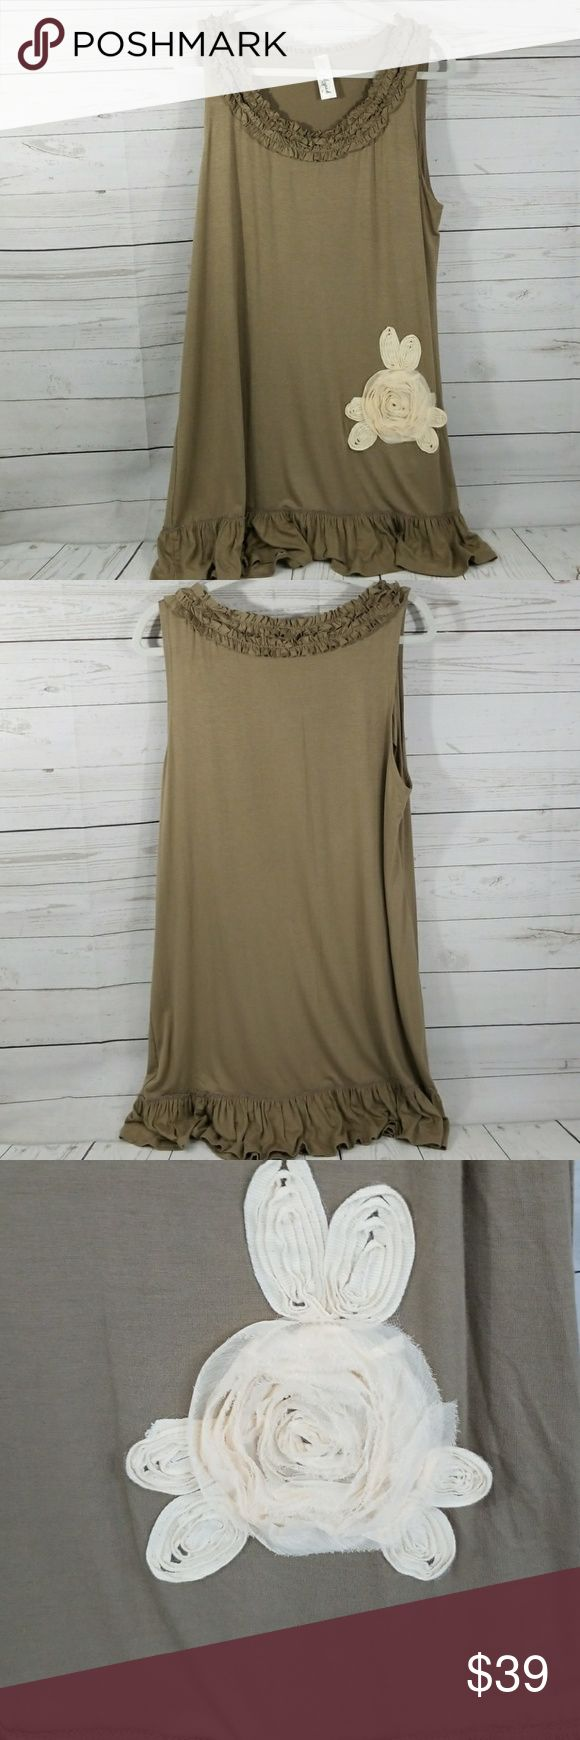 """Lilypad tunic tank Ruffles are on trend and this Lilypad long tunic tank does them in the cutest way. Neutral taupe with a cream color flower. This top is crying out for leggings and cute sandals. NWOT. (Bust is 21"""" laid flat. Size tag is 3 XL, but listing at 16 based on bust size.) Lilypad Tops Tunics"""